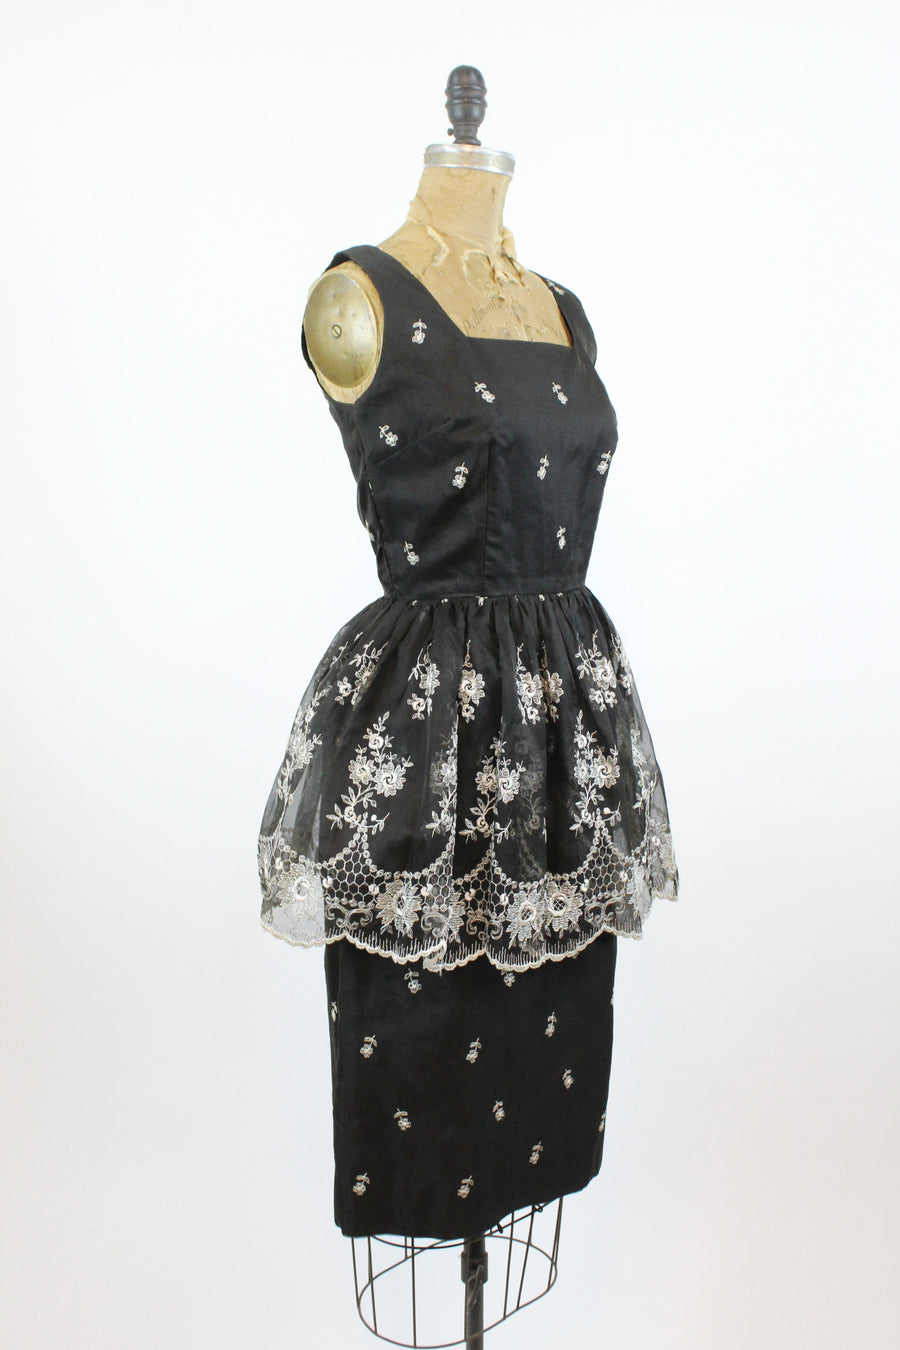 1950s peplum dress small | embroidered wiggle dress apron skirt | new in